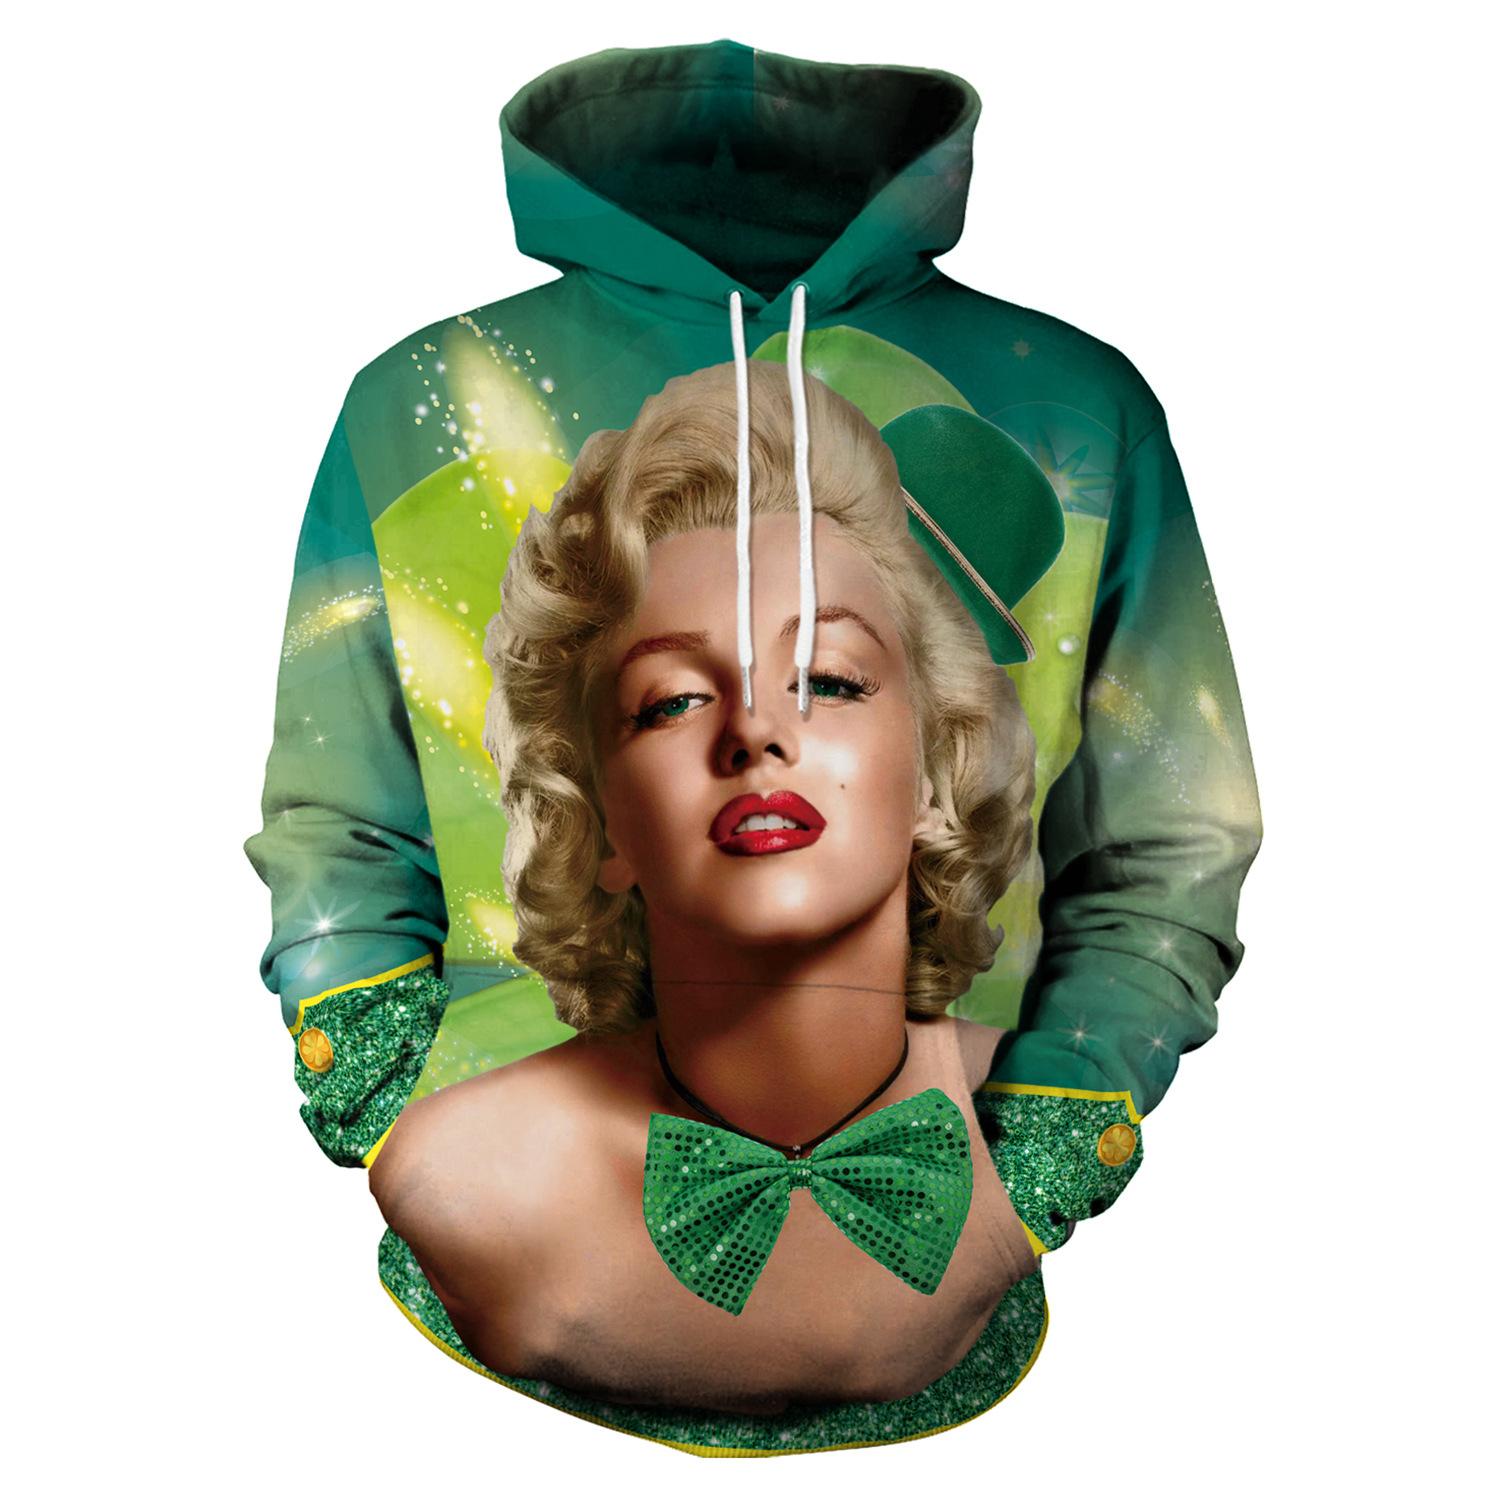 Rave festival clothing fashion street hipster single piece loose large size hooded Hoodie Price $23.99